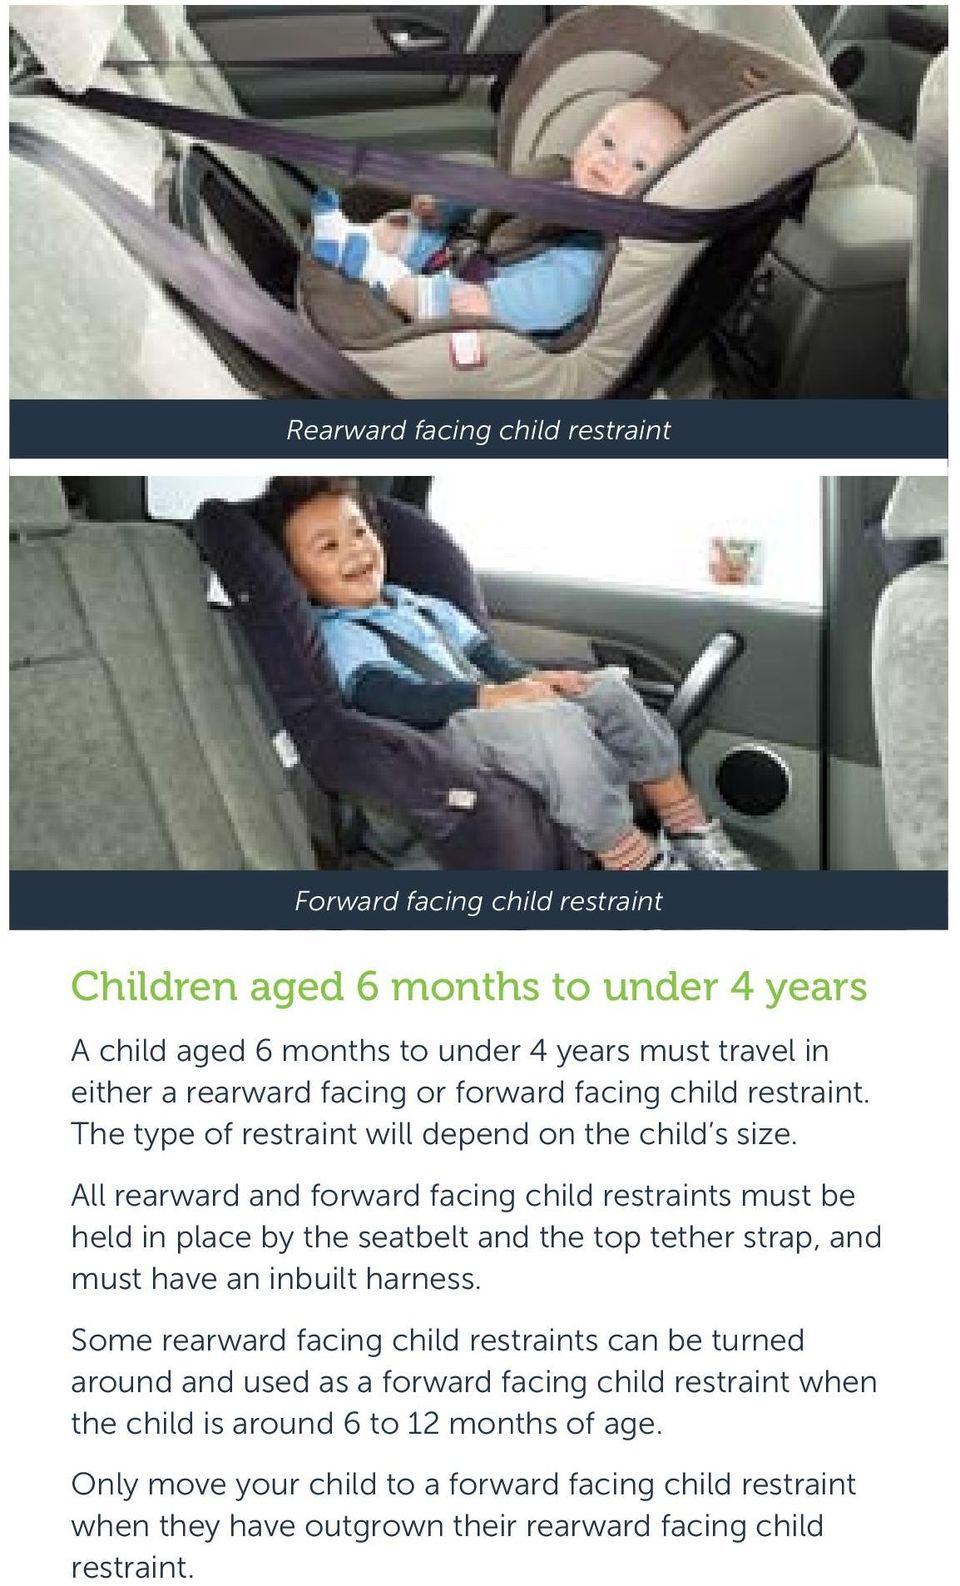 All Rearward And Forward Facing Child Restraints Must Be Held In Place By The Seatbelt